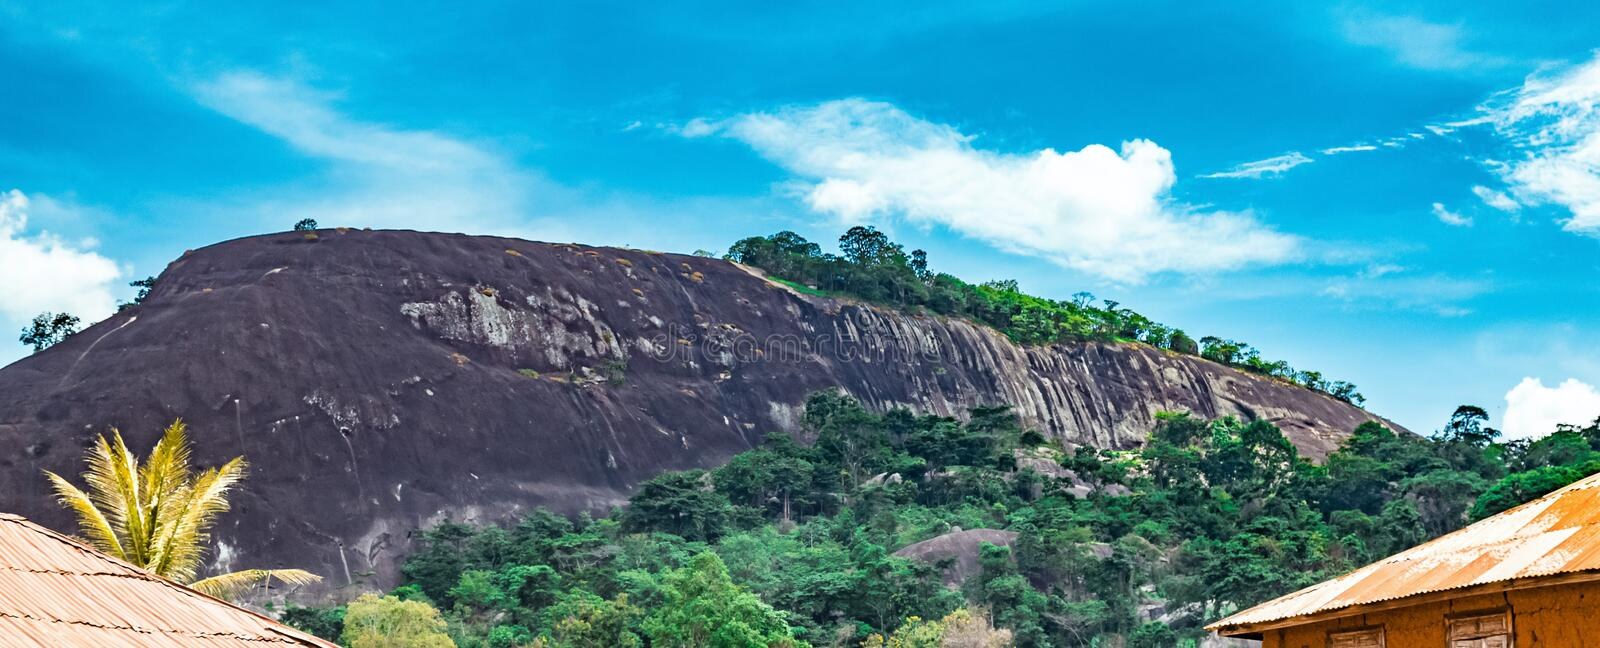 One of the Ekiti Hills in Ikere Ekiti Nigeria. One of the many rock formations in Ekiti State of Nigeria Africa. There is visible housing development at the stock image